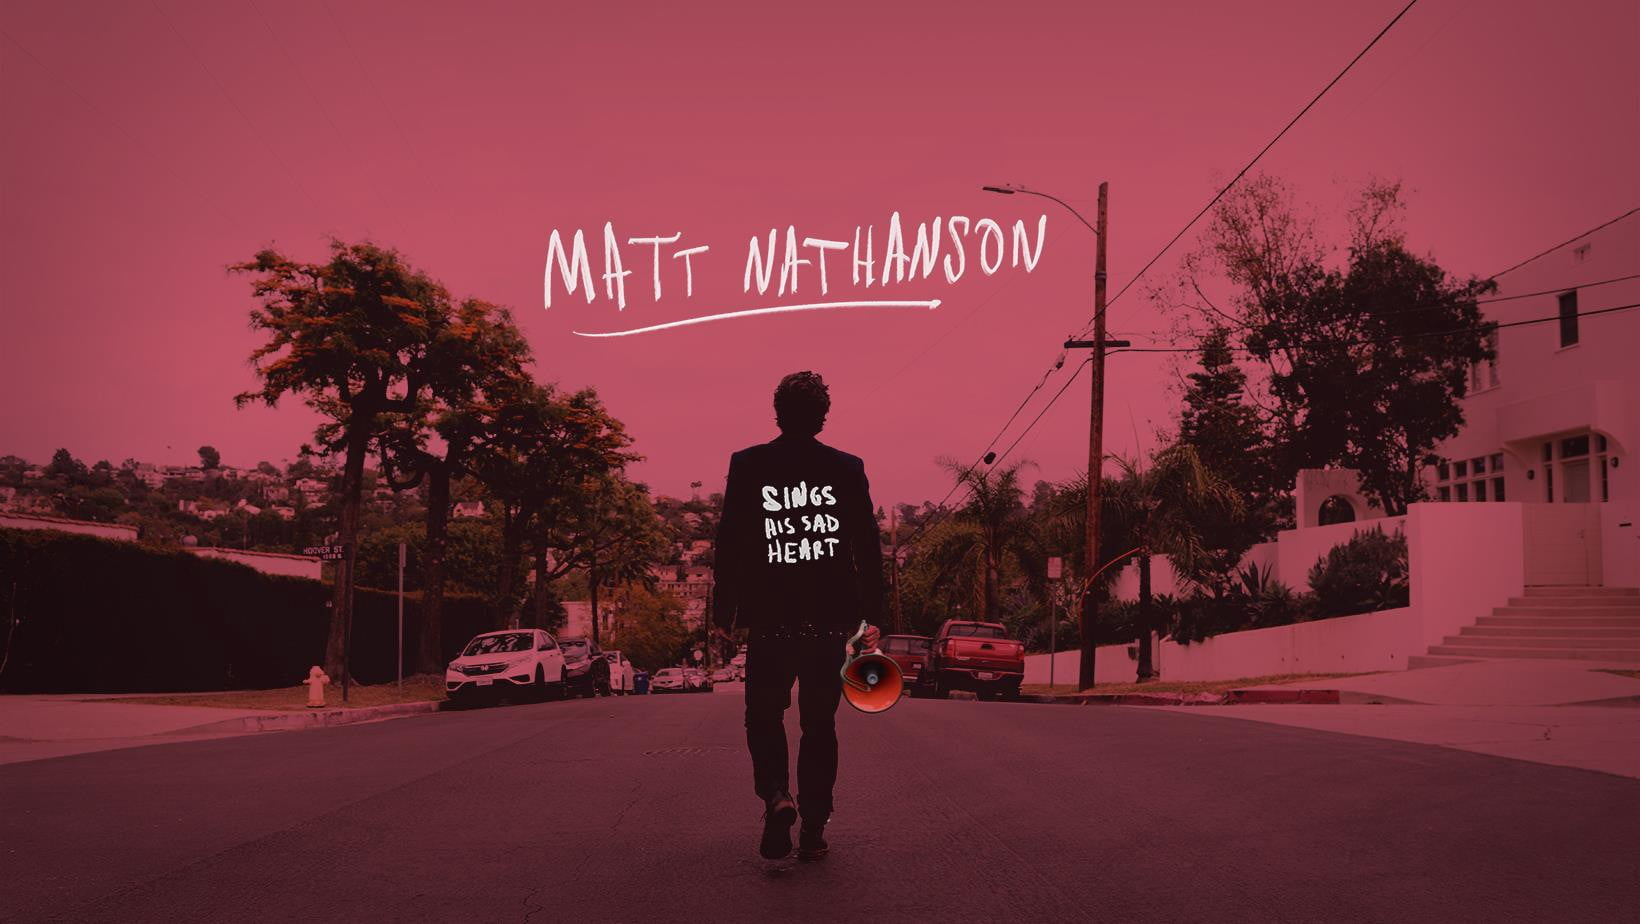 Matt Nathanson: Writing From the Heart